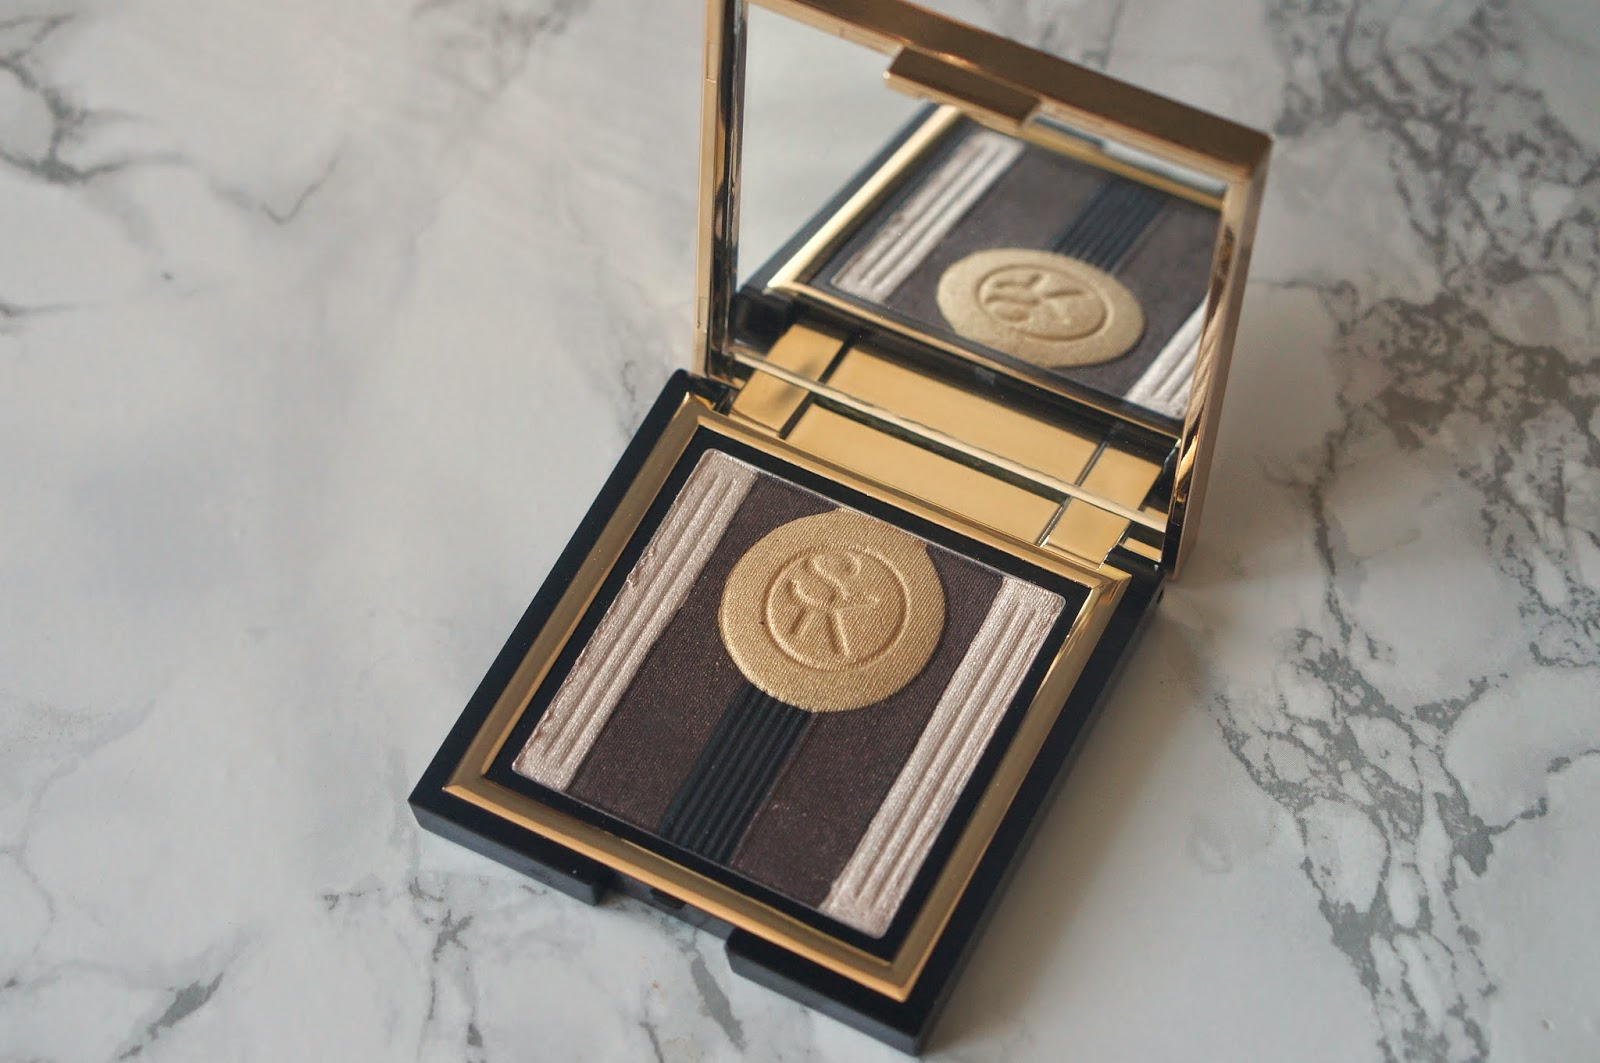 sonia kashuk art deco eye shadow palette